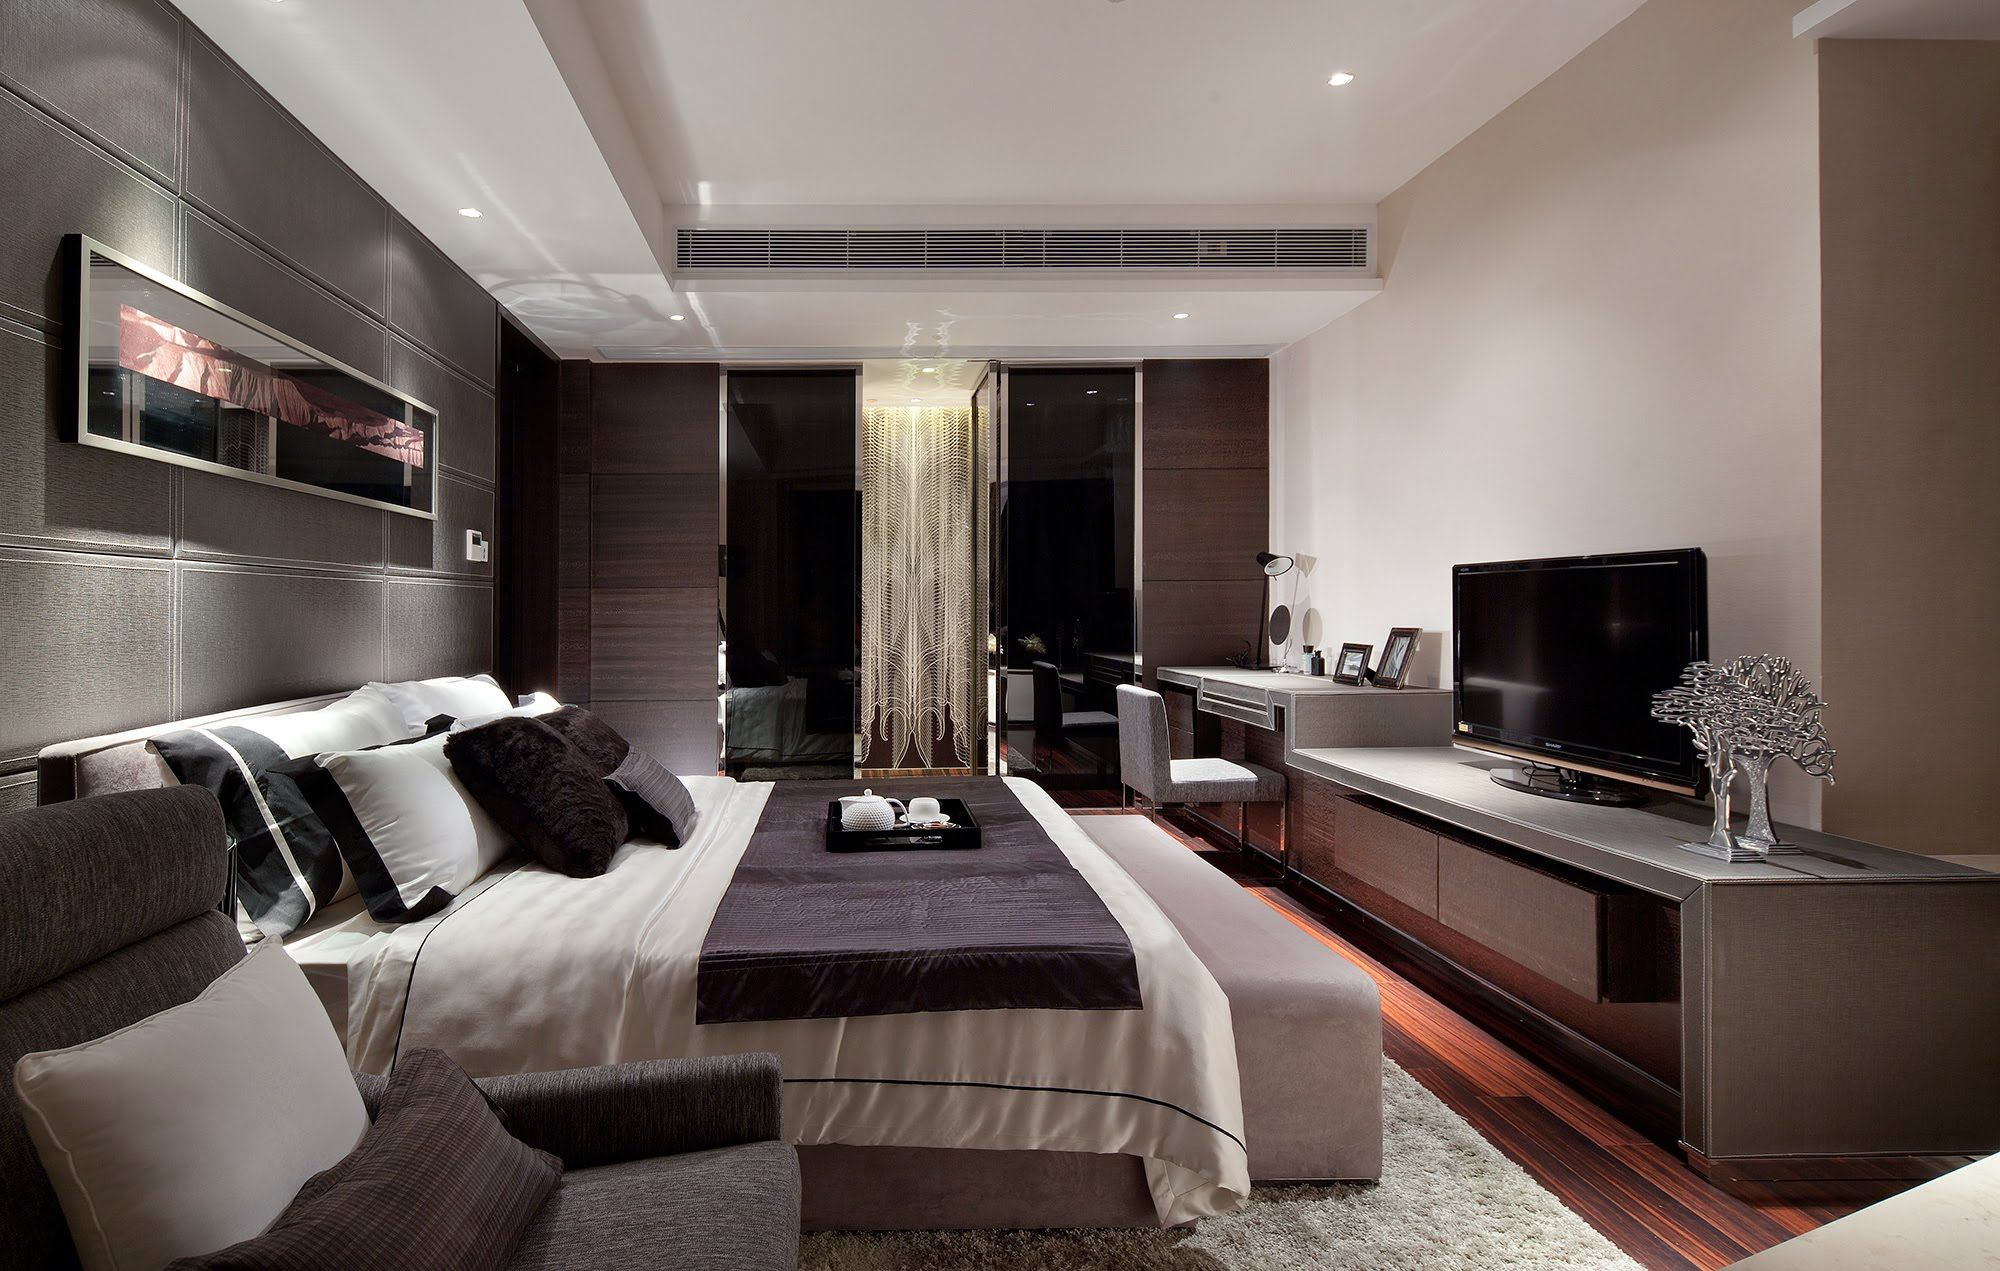 50 Romantic Bedroom Designs For Couples 2017 Apartment Bedroom